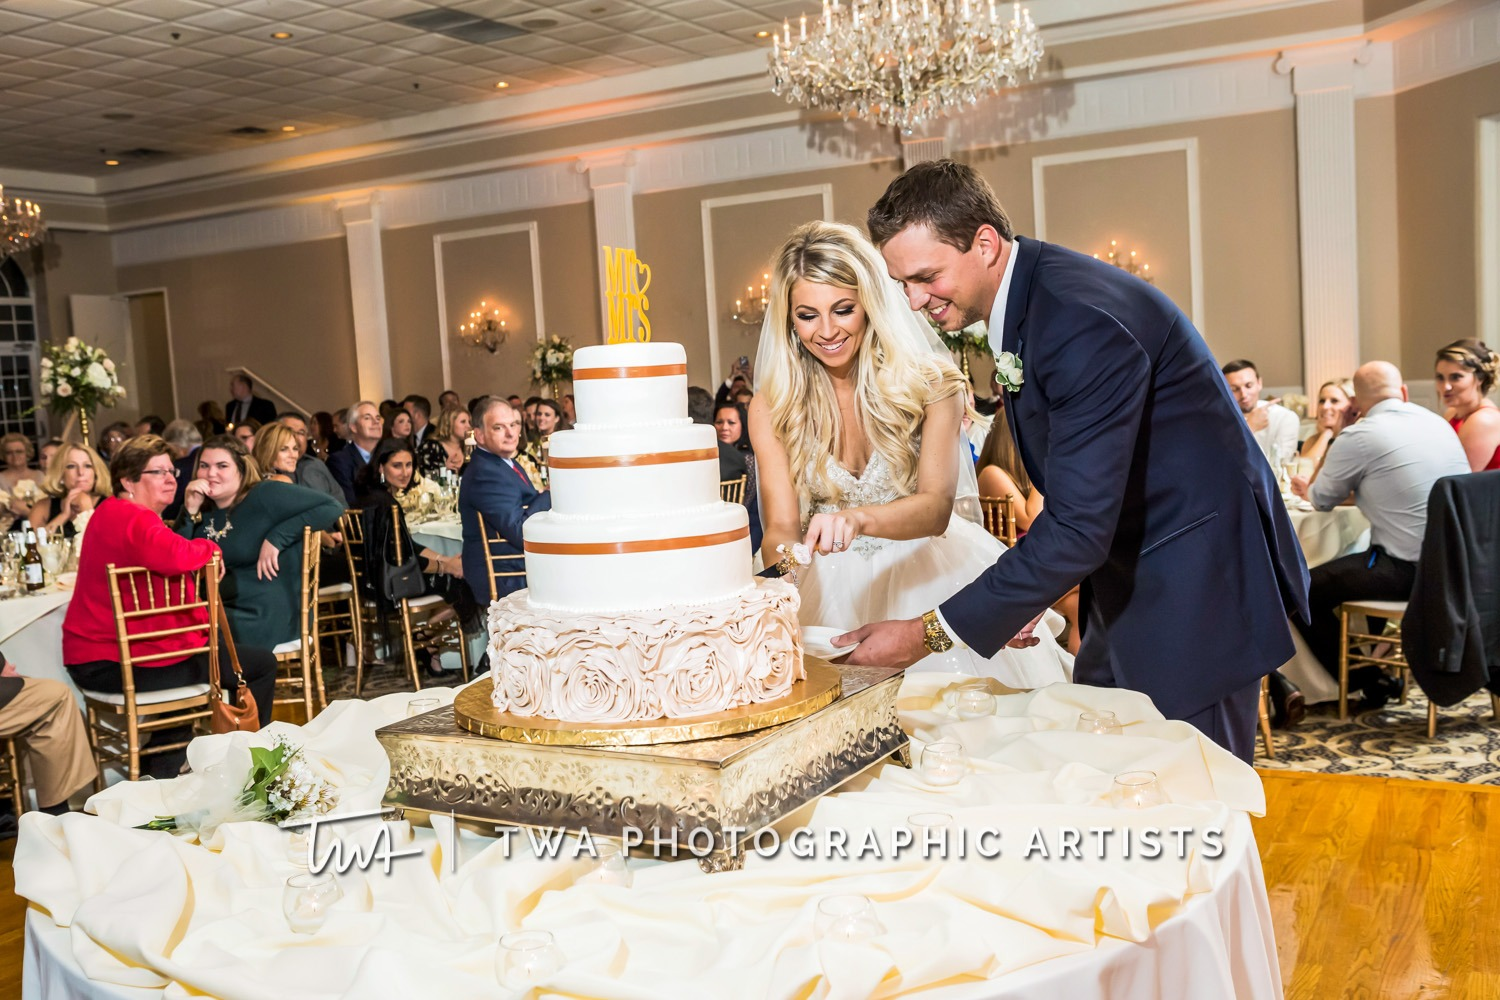 Chicago-Wedding-Photographer-TWA-Photographic-Artists-Abbington-Banquets_Annoreno_Baird_MiC_SG-0602